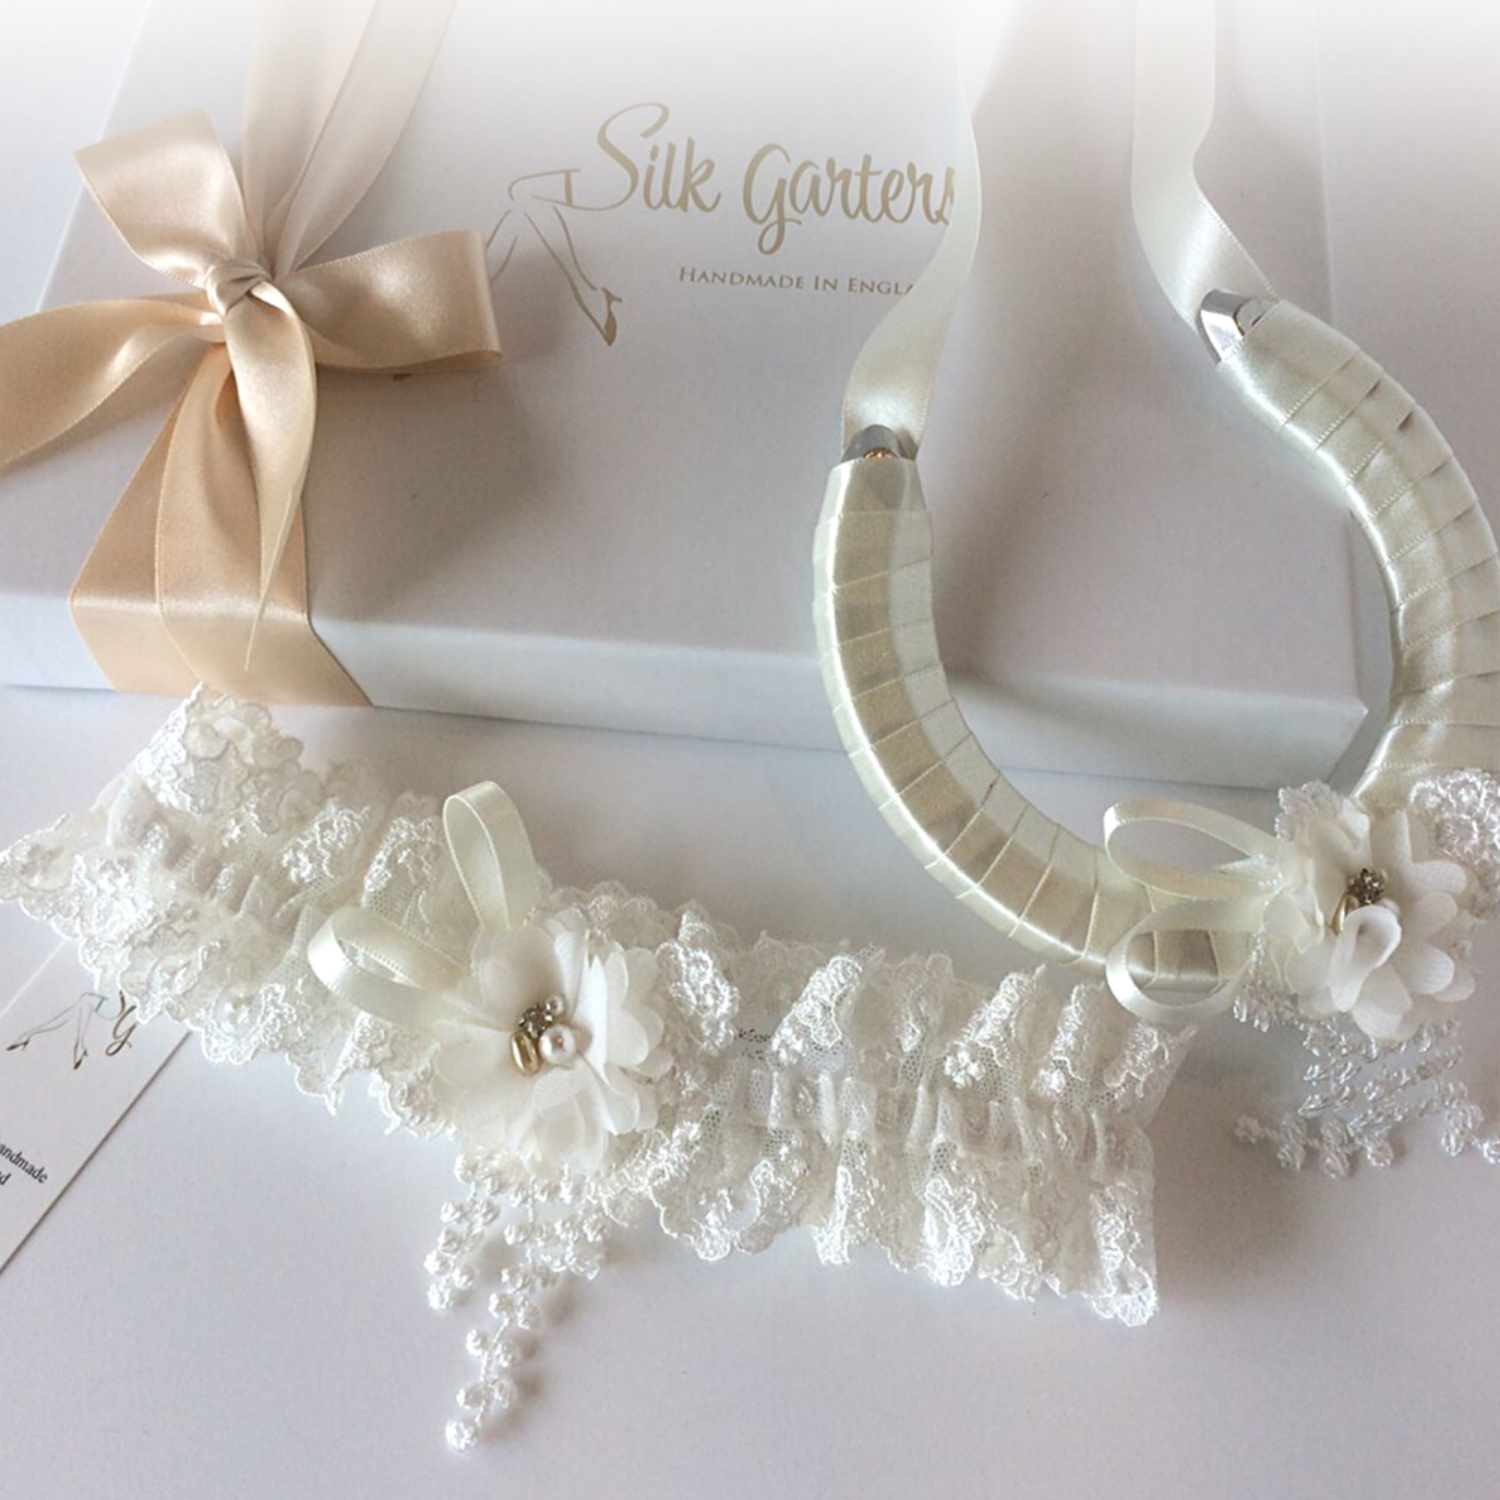 Luxury wedding garter set with wedding horseshoe